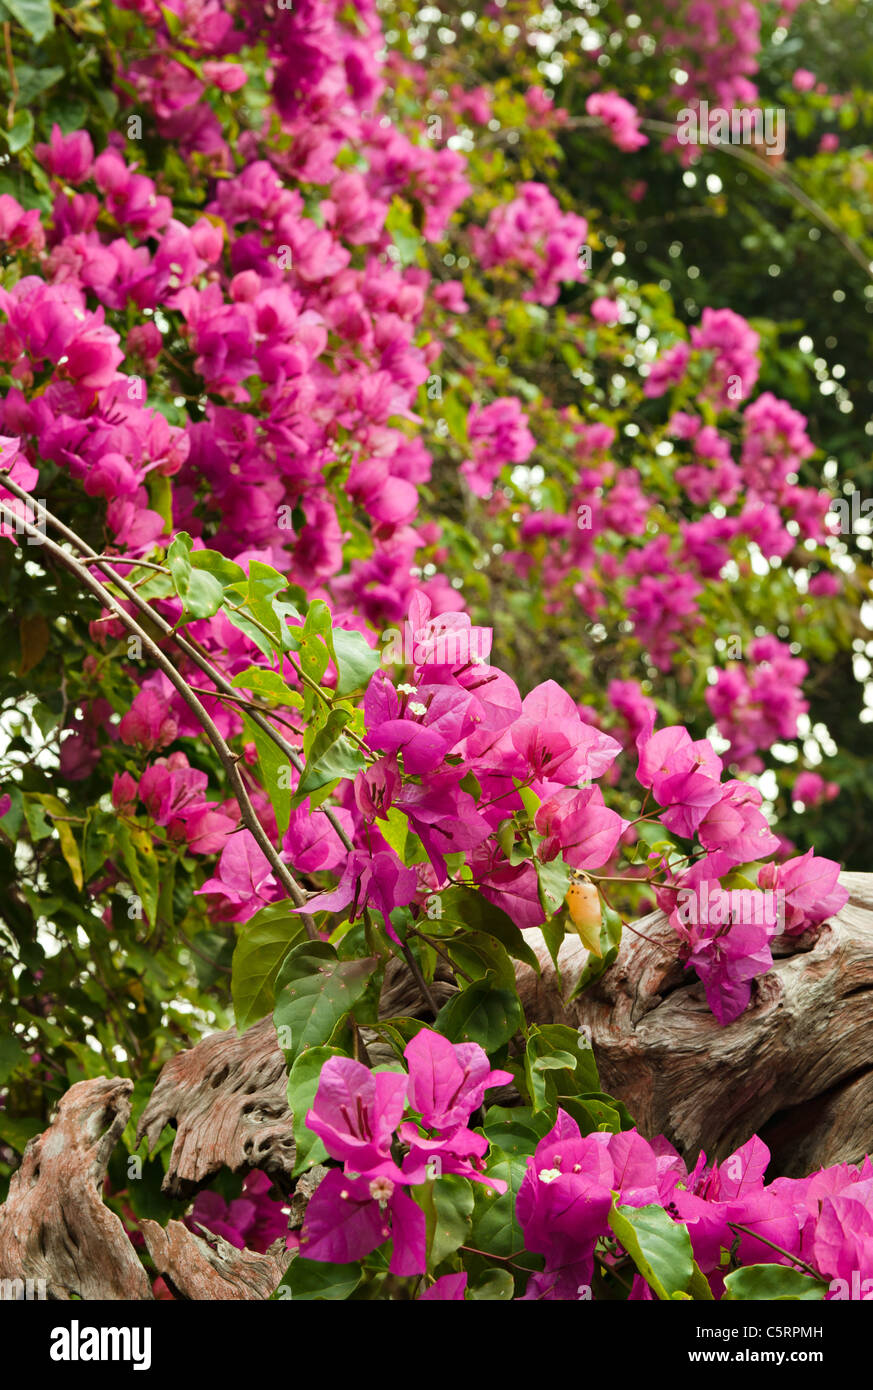 beautiful spray of pink flowers in the garden - Stock Image